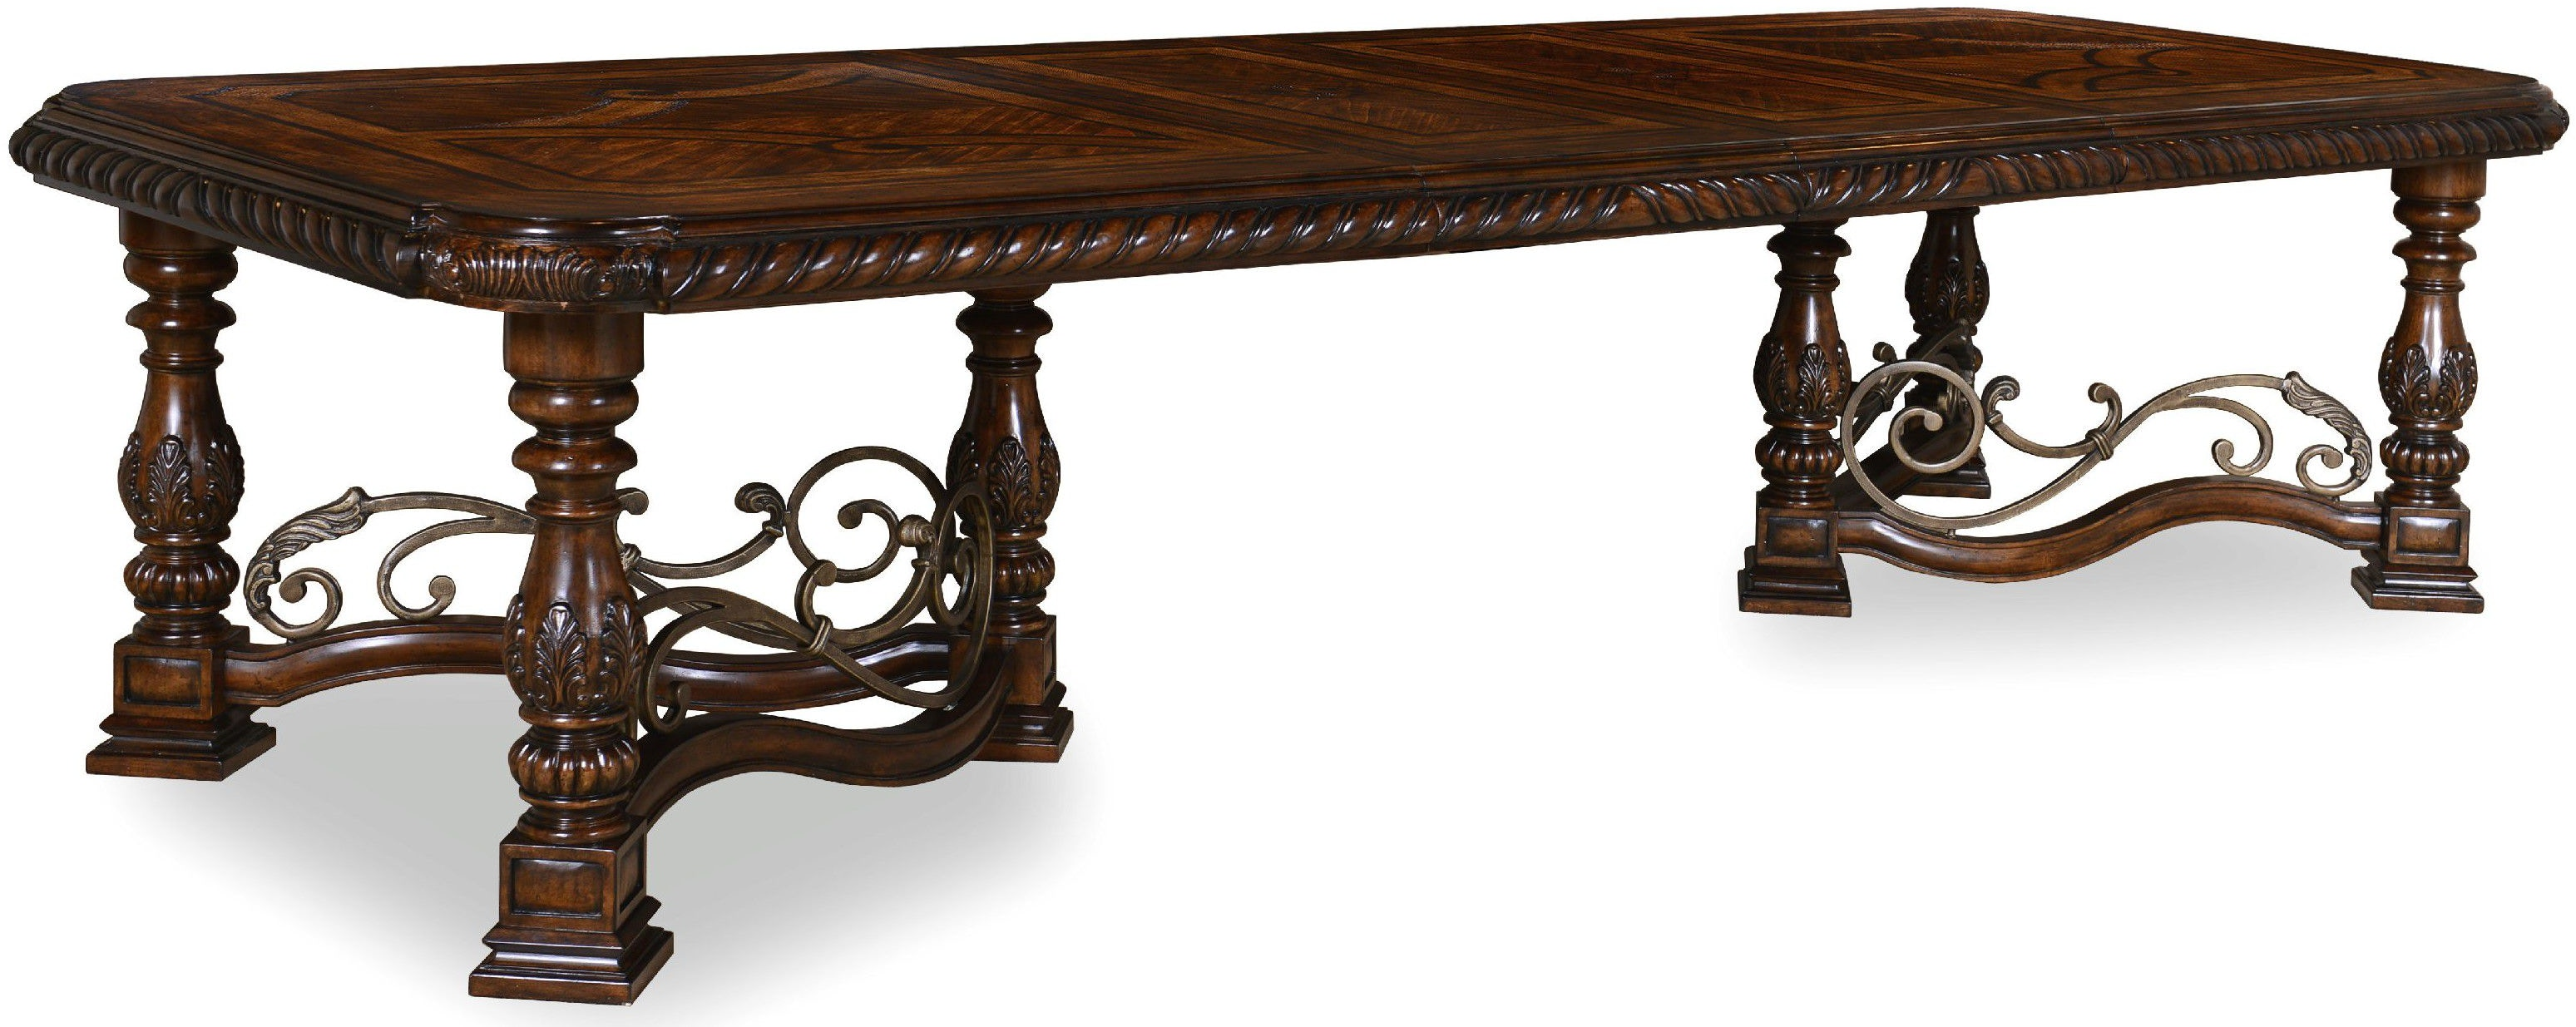 ART Furniture Dining Room Trestle Dining Table 209221 2304  : 209221 2304sl1 from www.shofers.com size 1024 x 768 jpeg 46kB